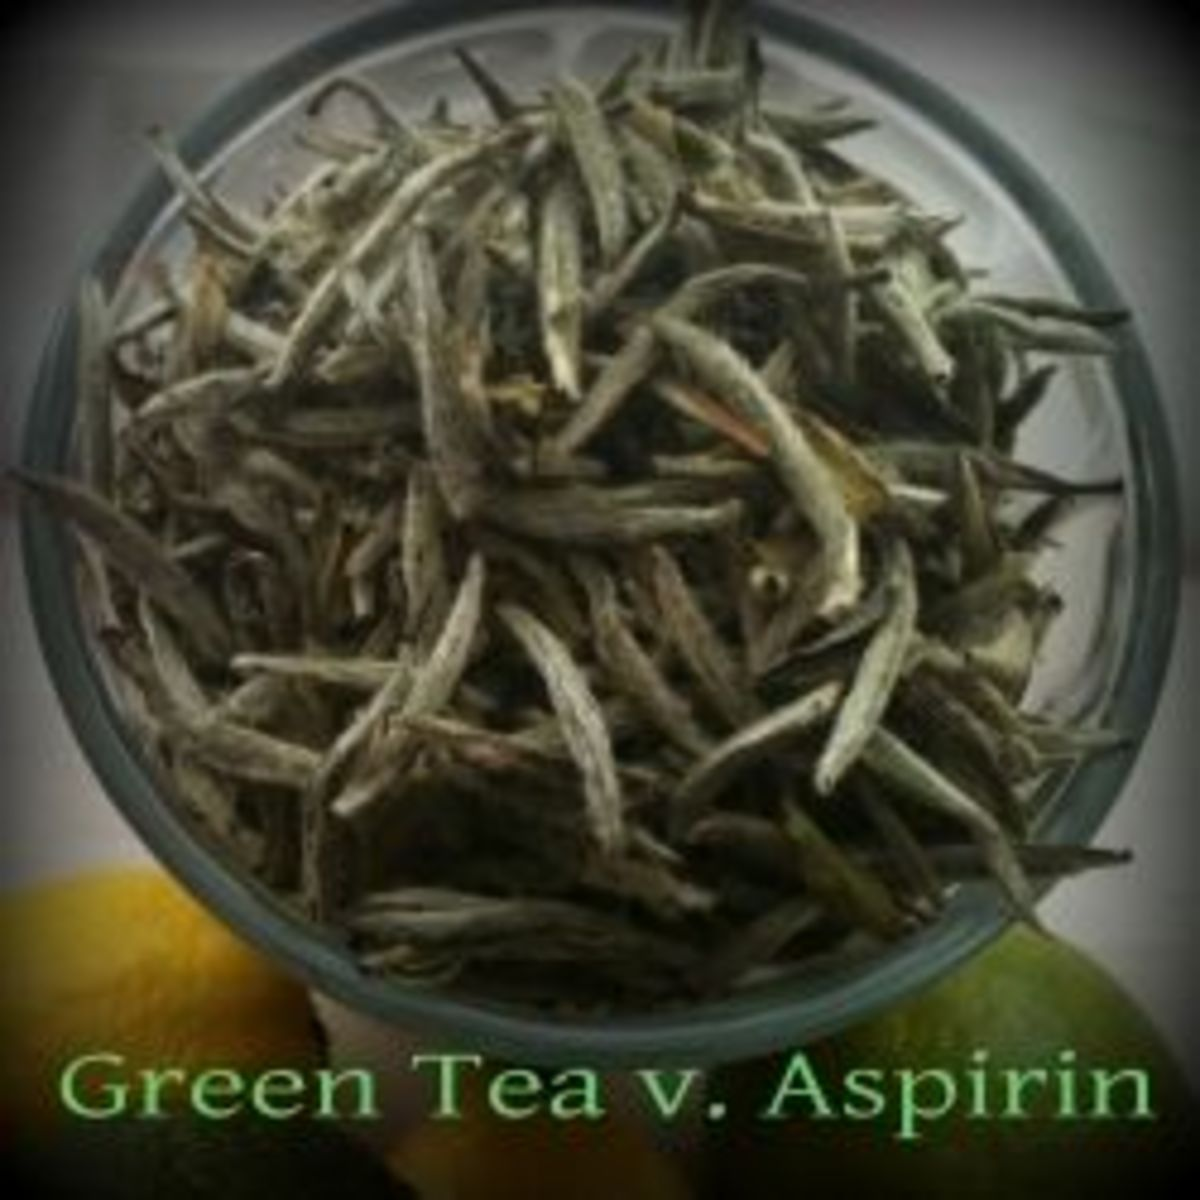 Green Tea as an Effective Alternative to Daily Low-Dose Aspirin